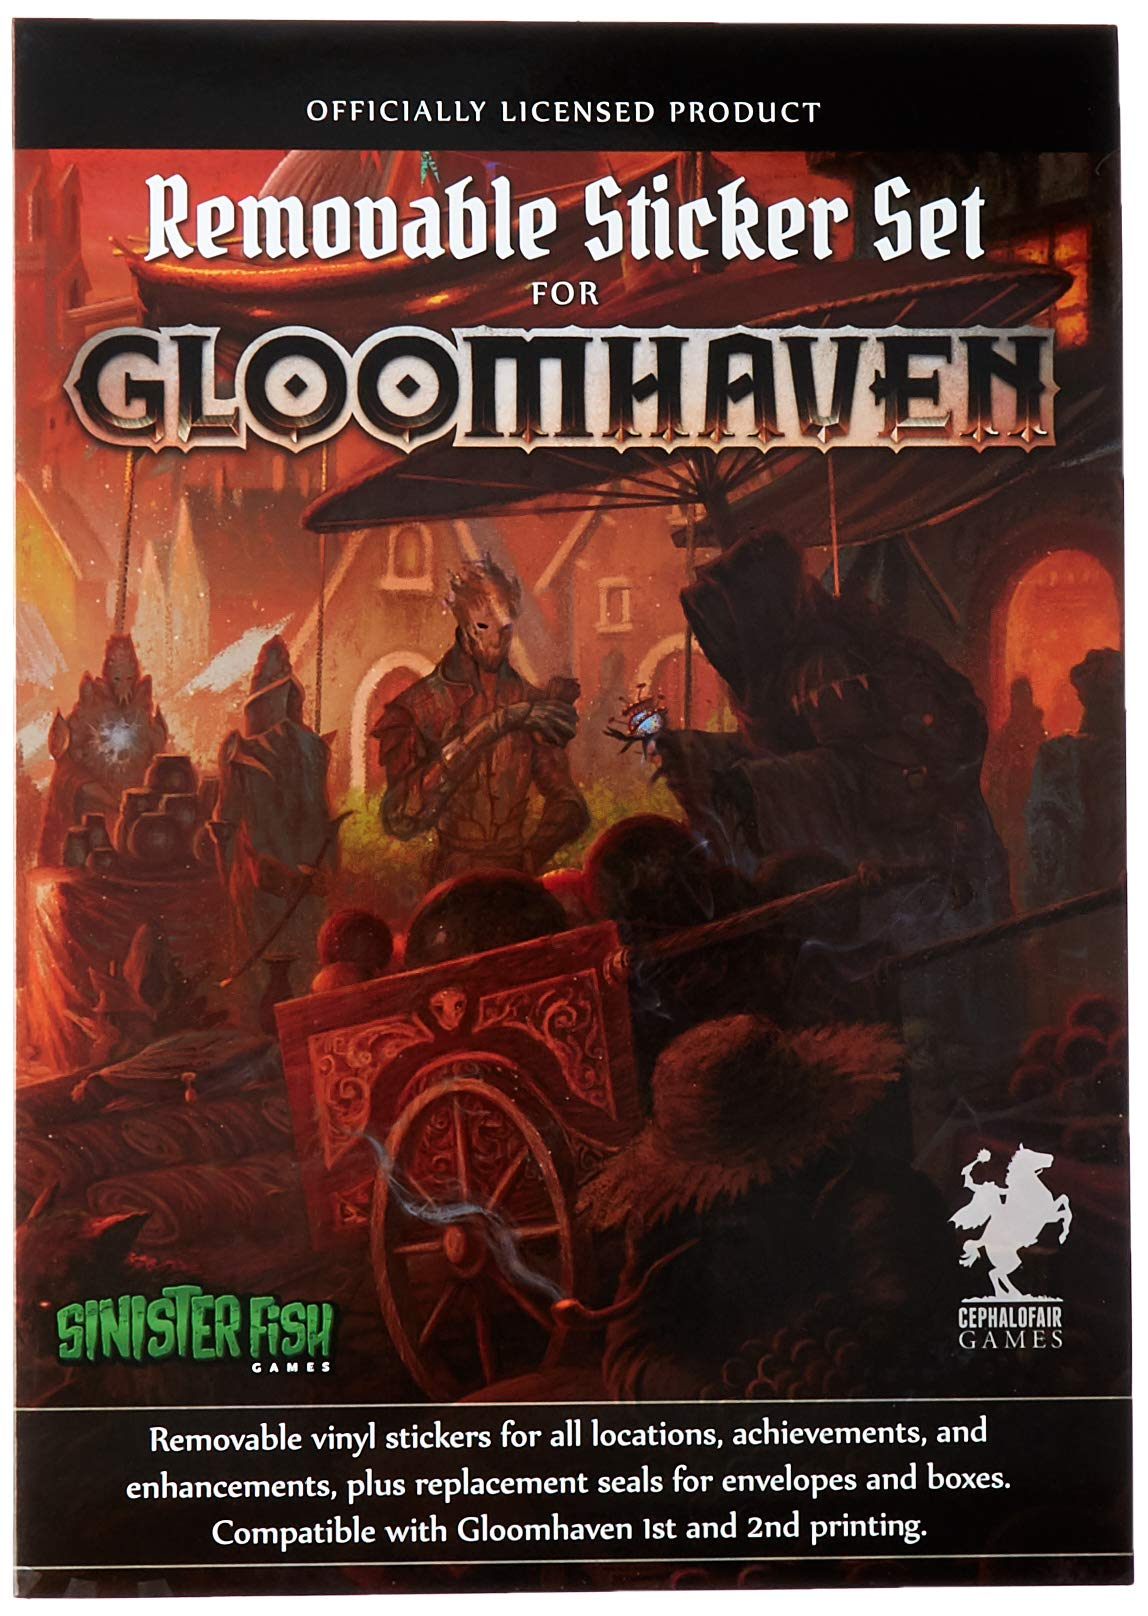 Cephalofair Games Sinister Fish Gloomhaven Removable Sticker Set, Removable Stickers Multi-Award-Winning Strategy Boxed Board Game Accessory for ages 12 & Up, SIF00020